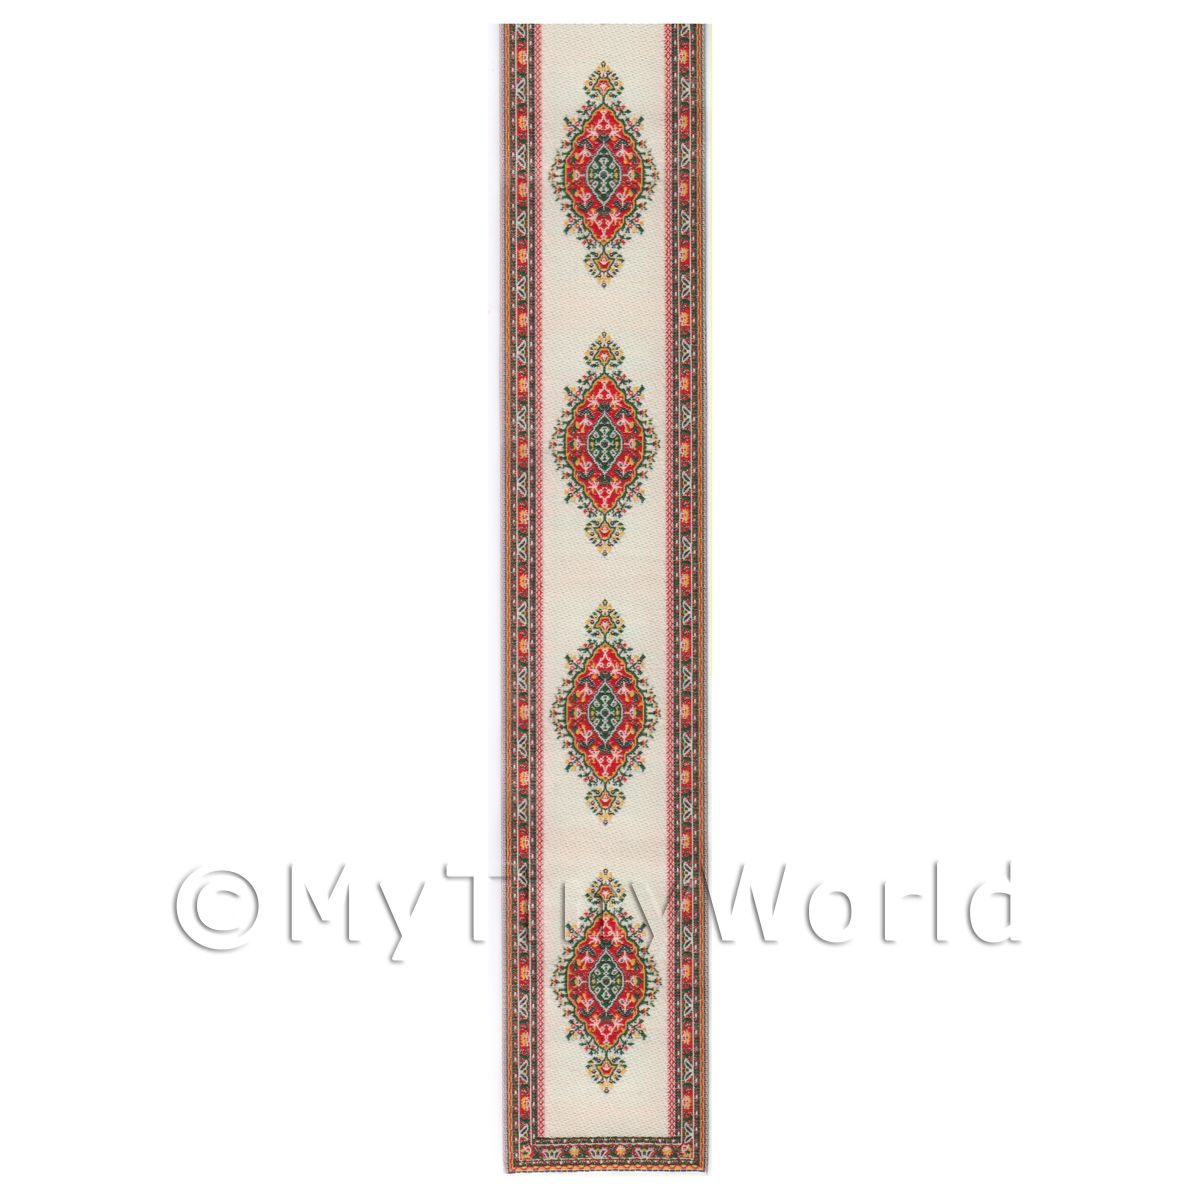 Dolls House Miniature 36cm White Stair Runner With Red Diamonds (MR3)